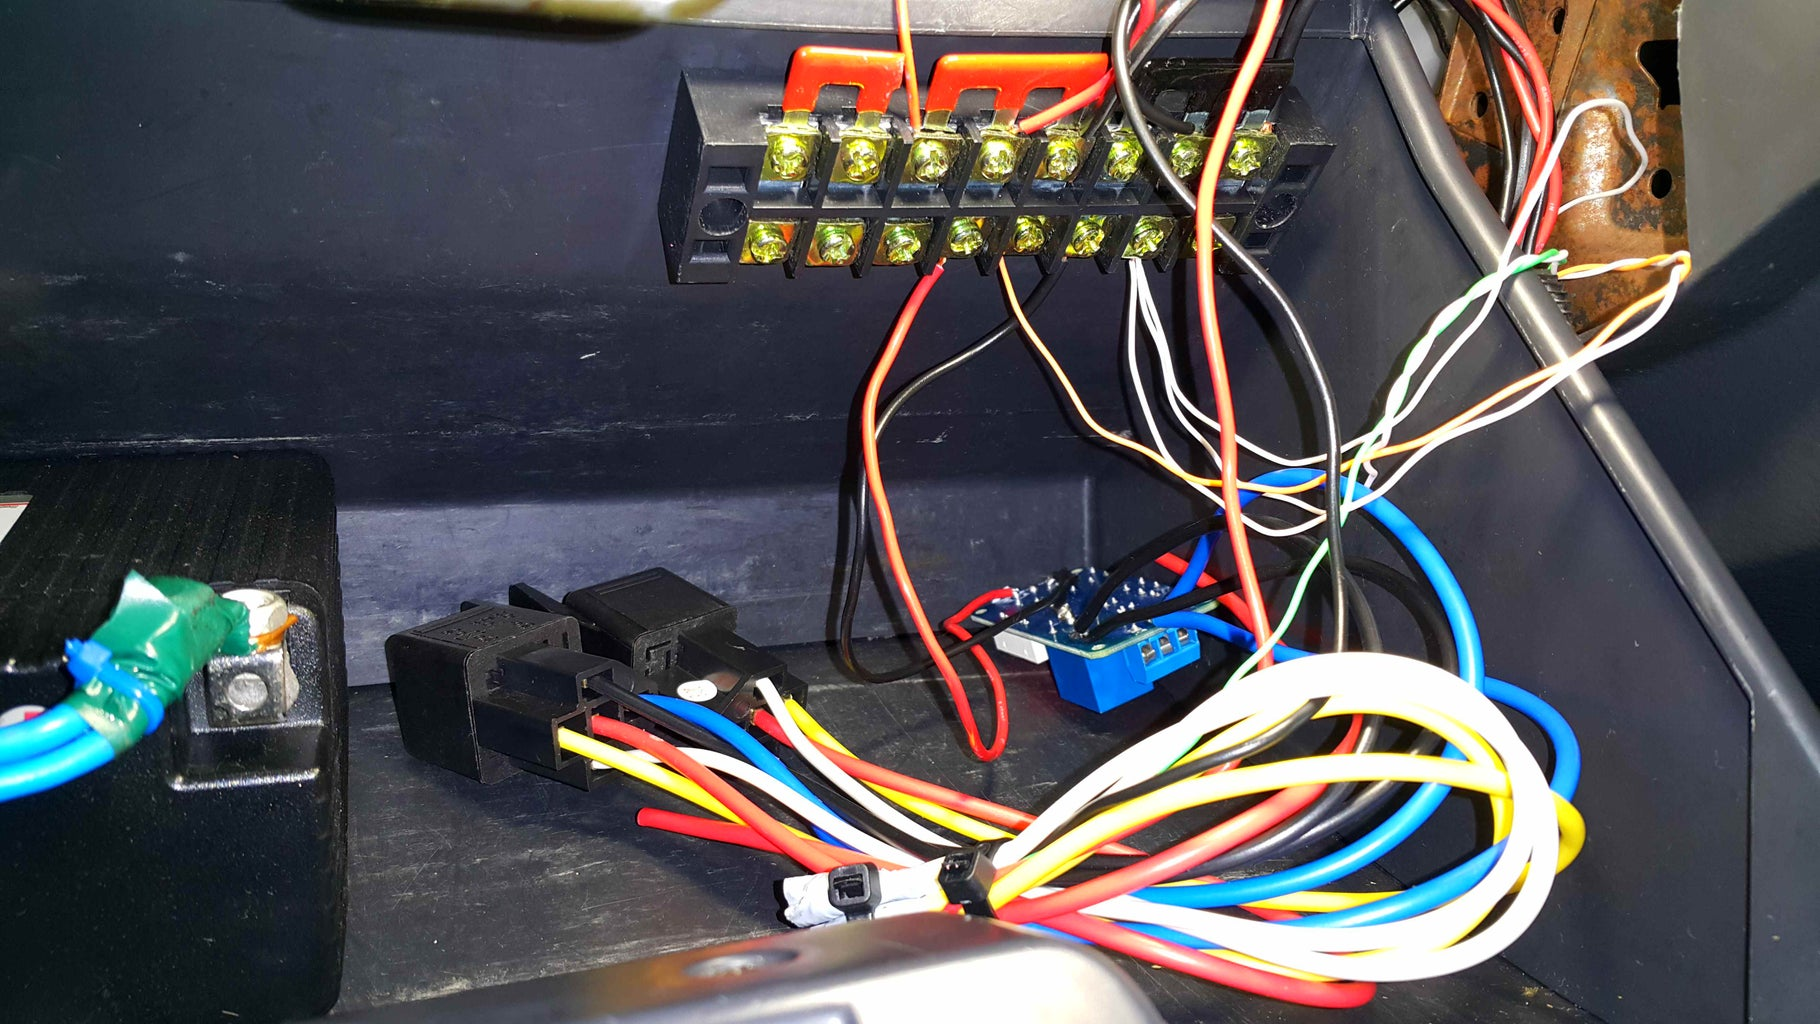 Final Wiring and Completion.